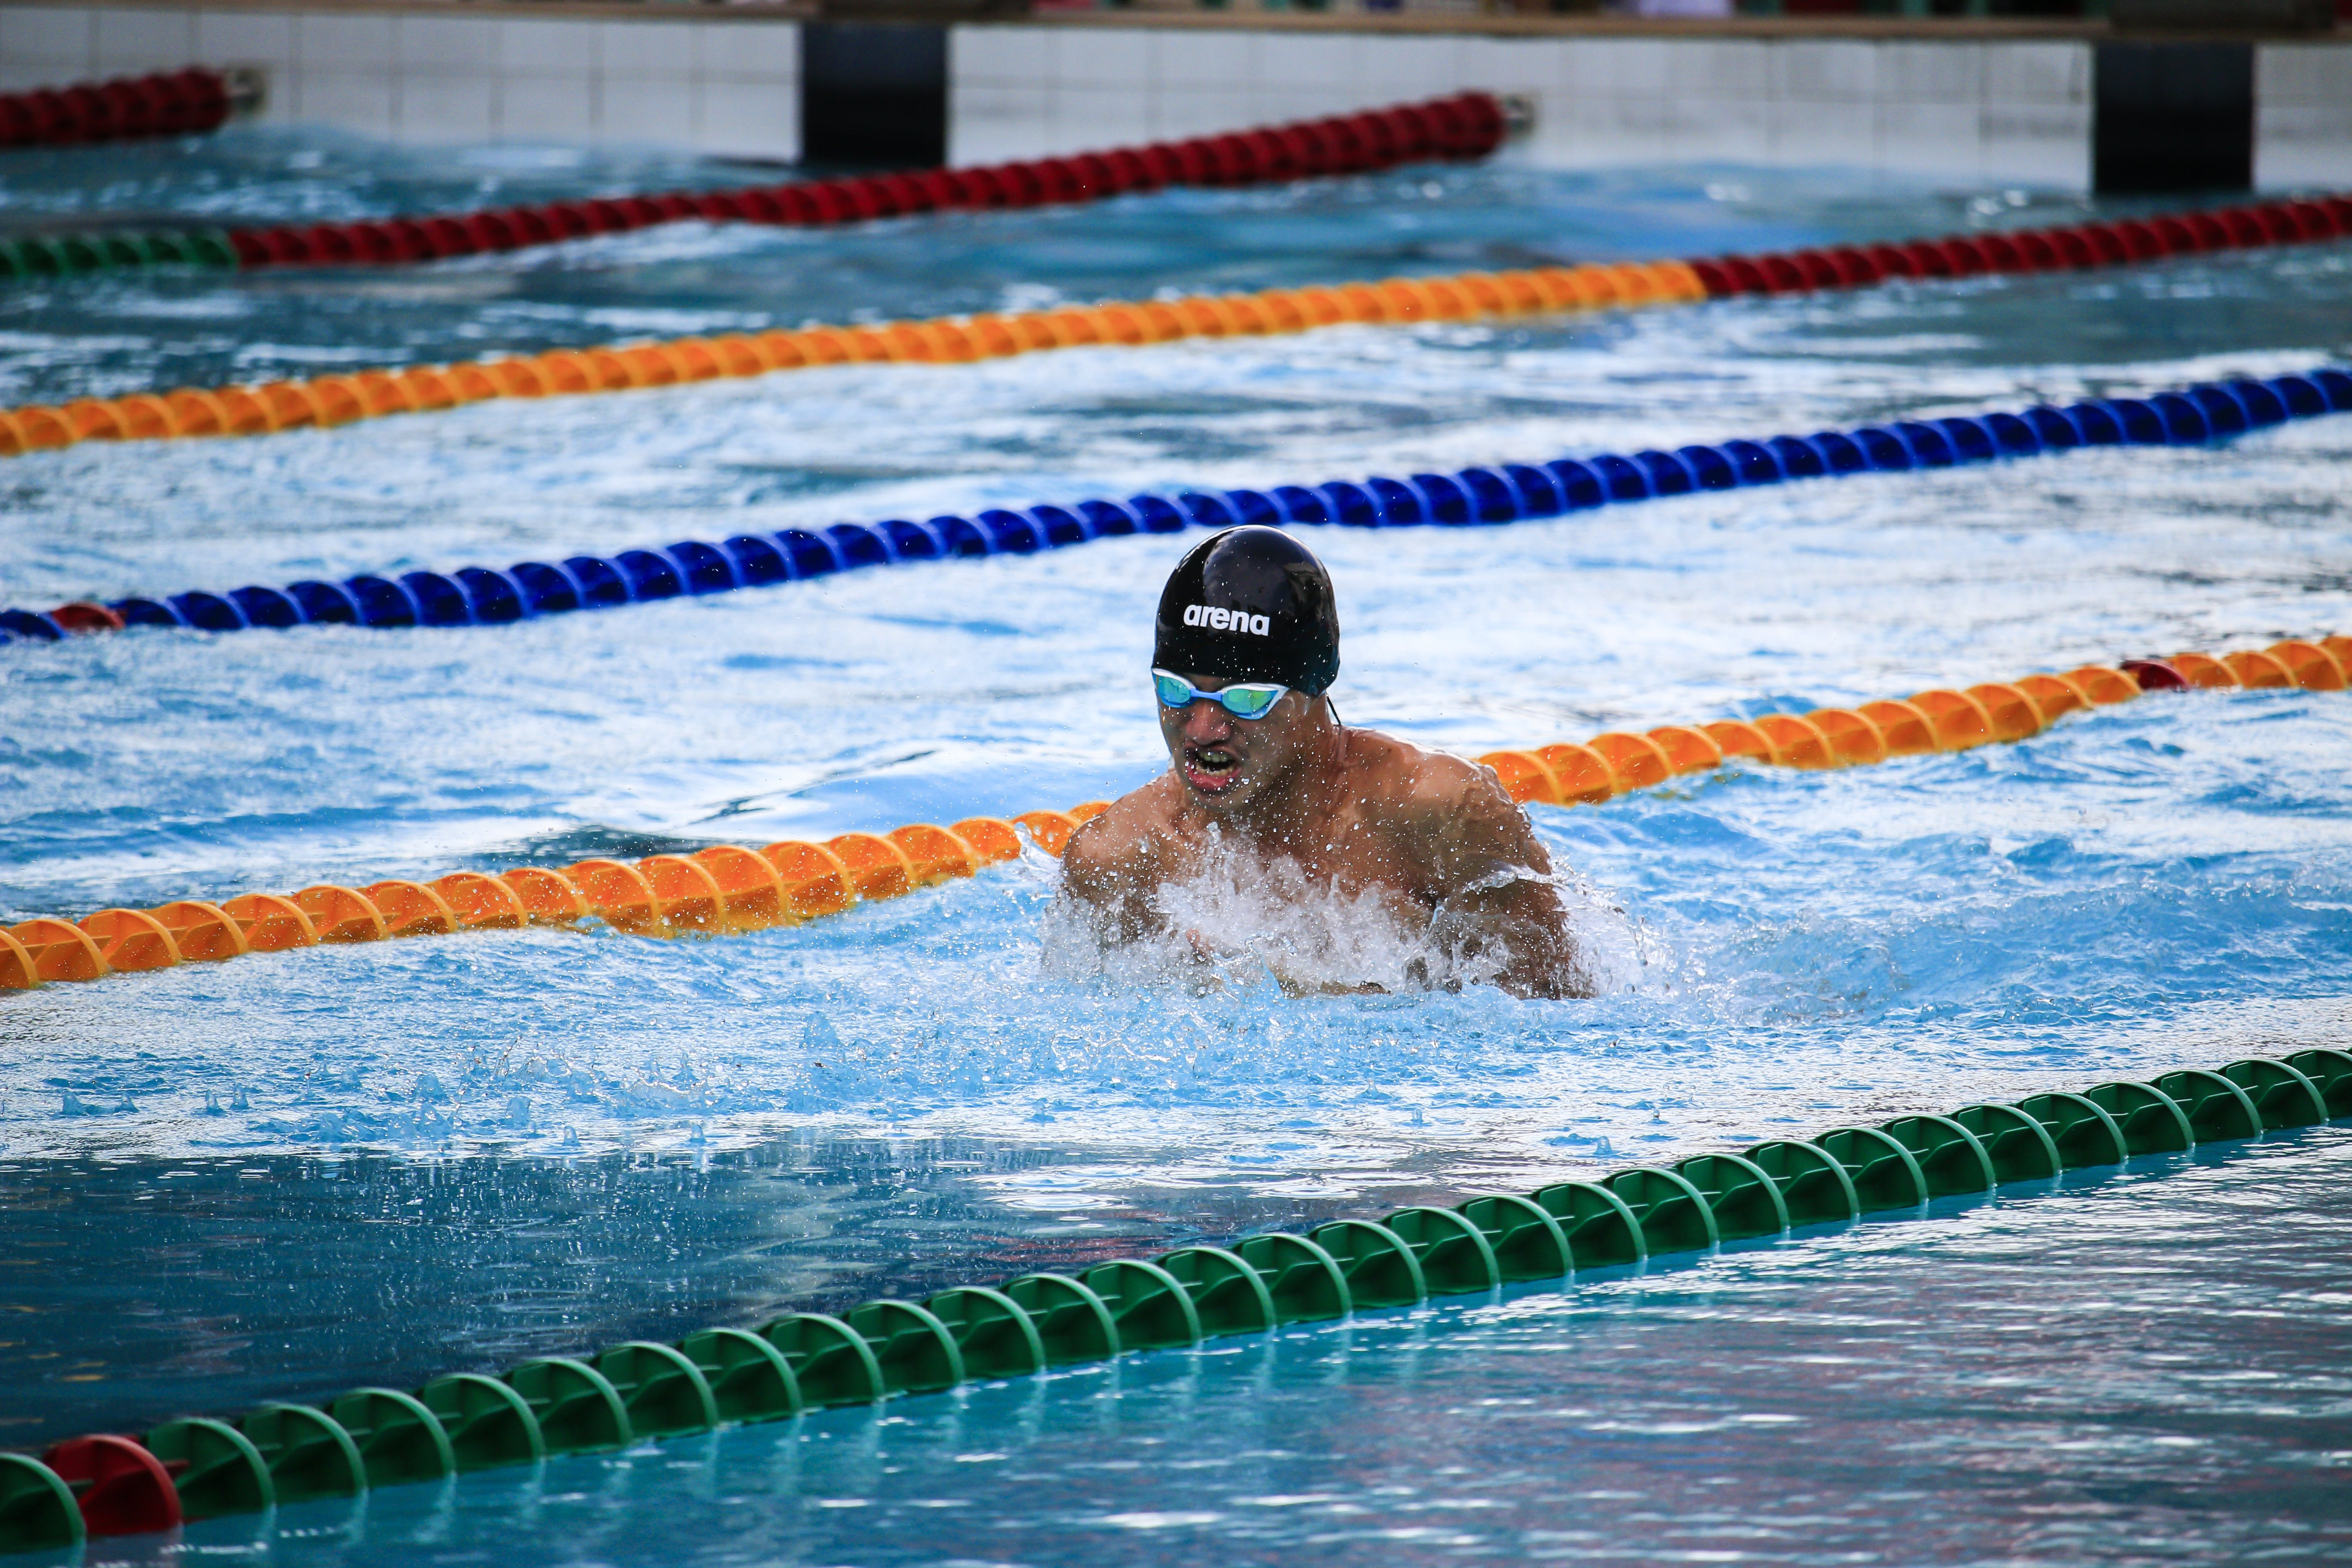 Swimmer on Pool